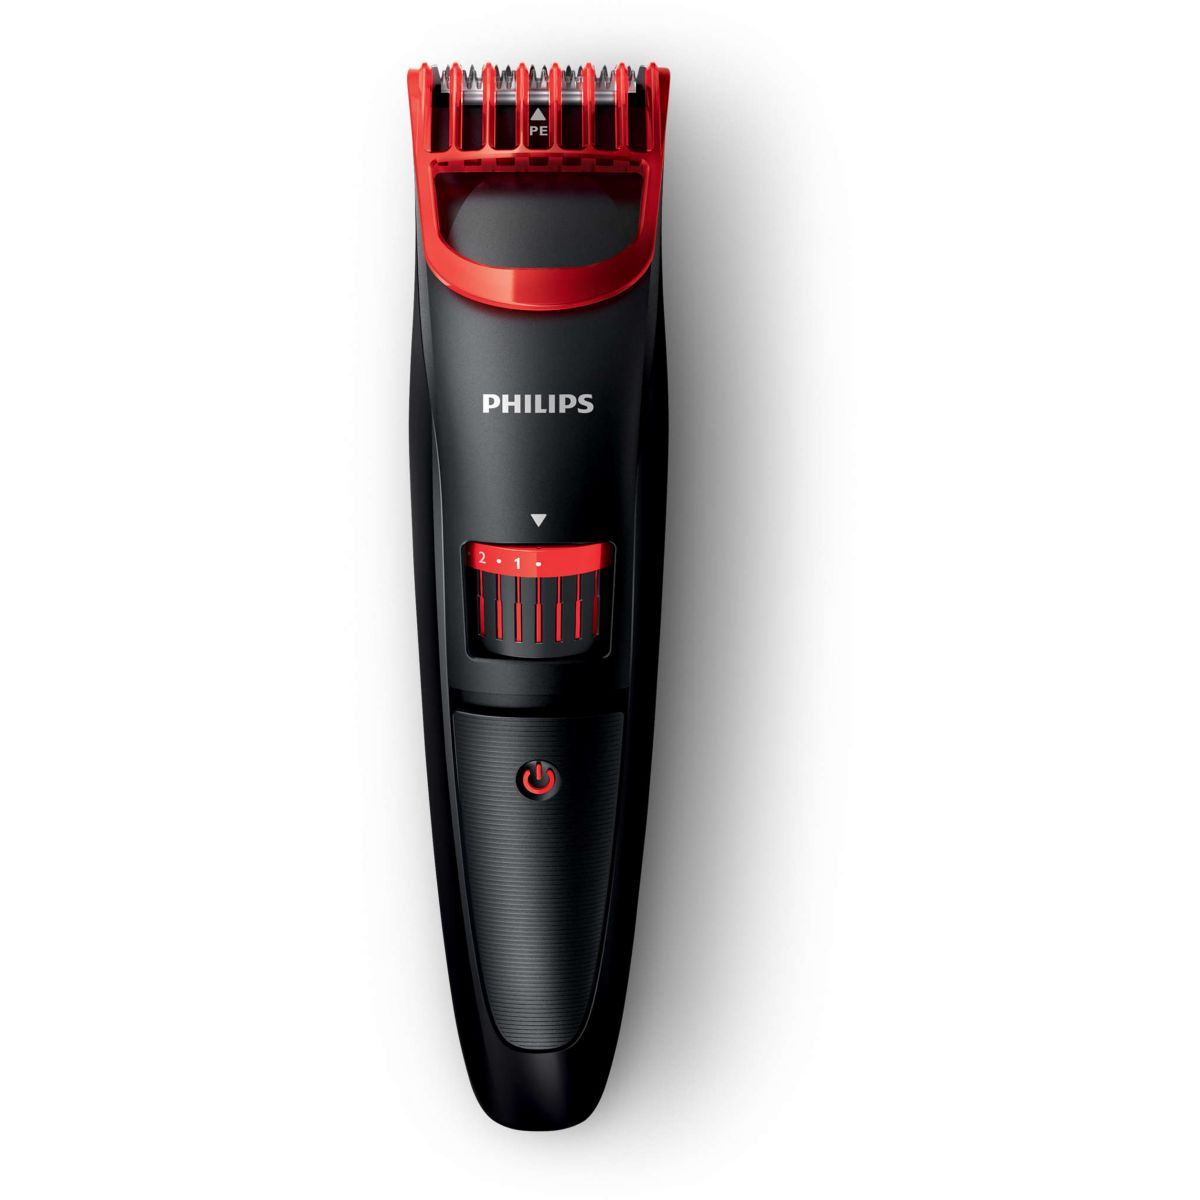 Tondeuse barbe philips bt405.16